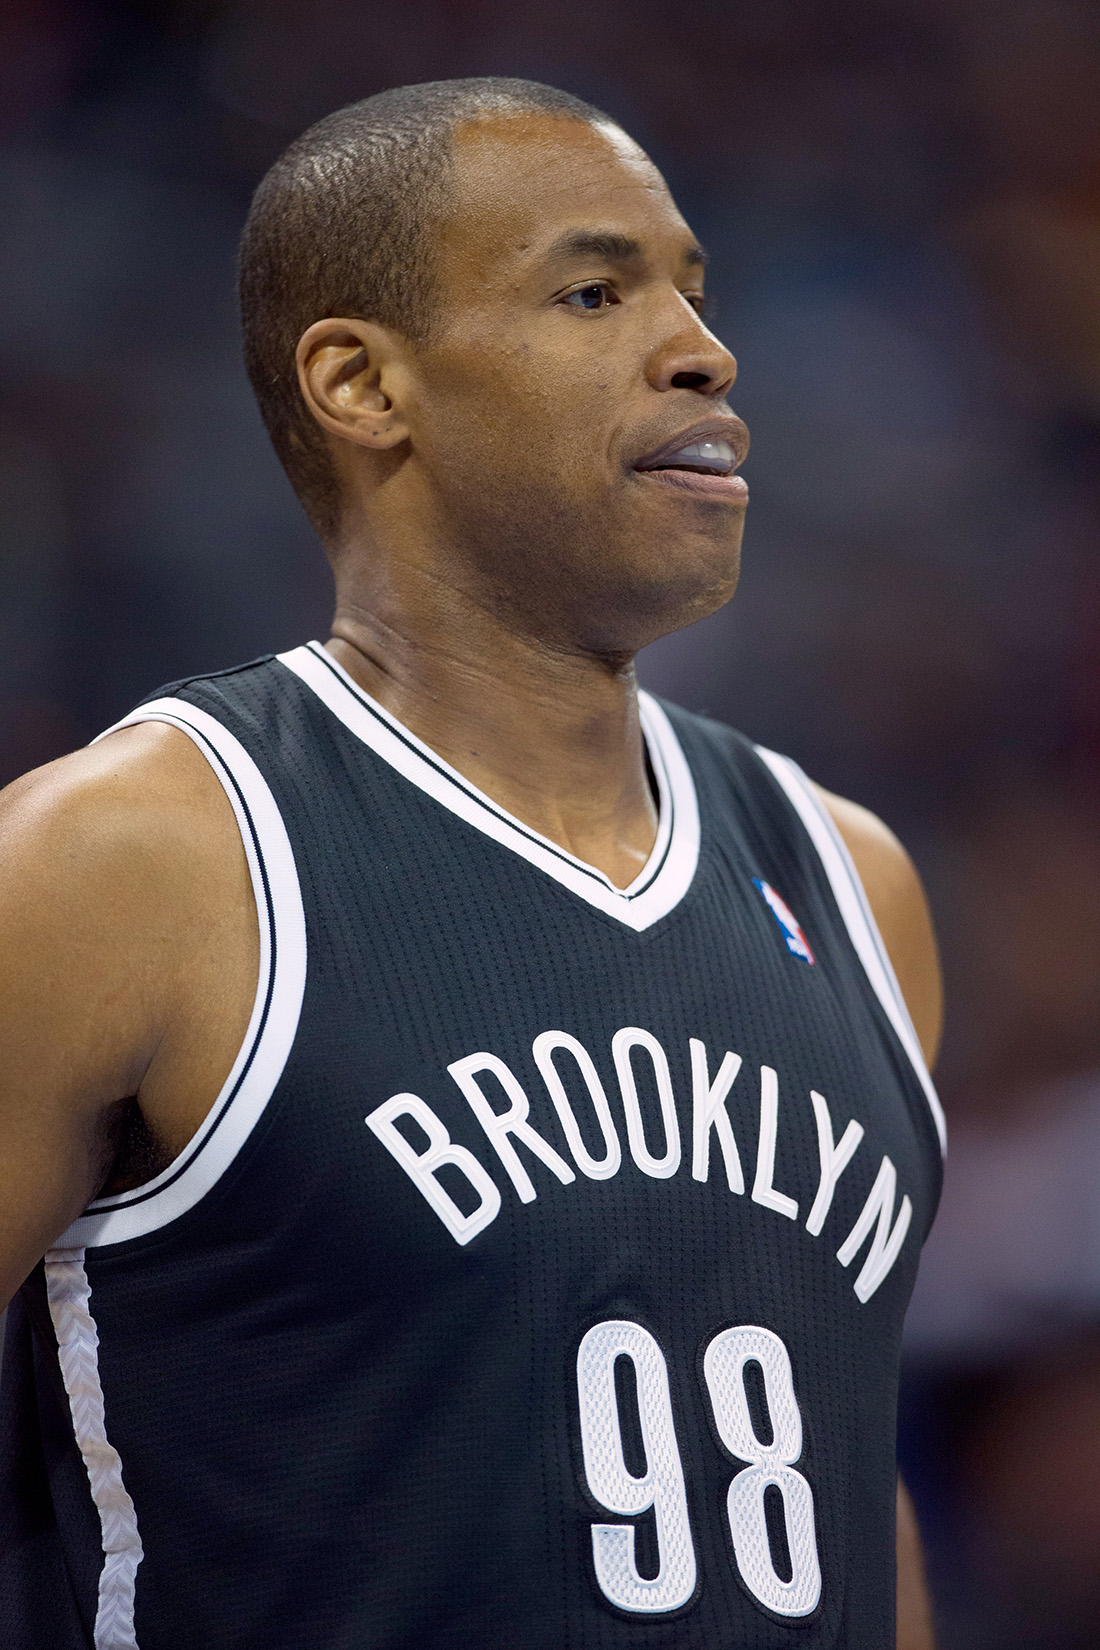 JASON COLLINS en viva basquet